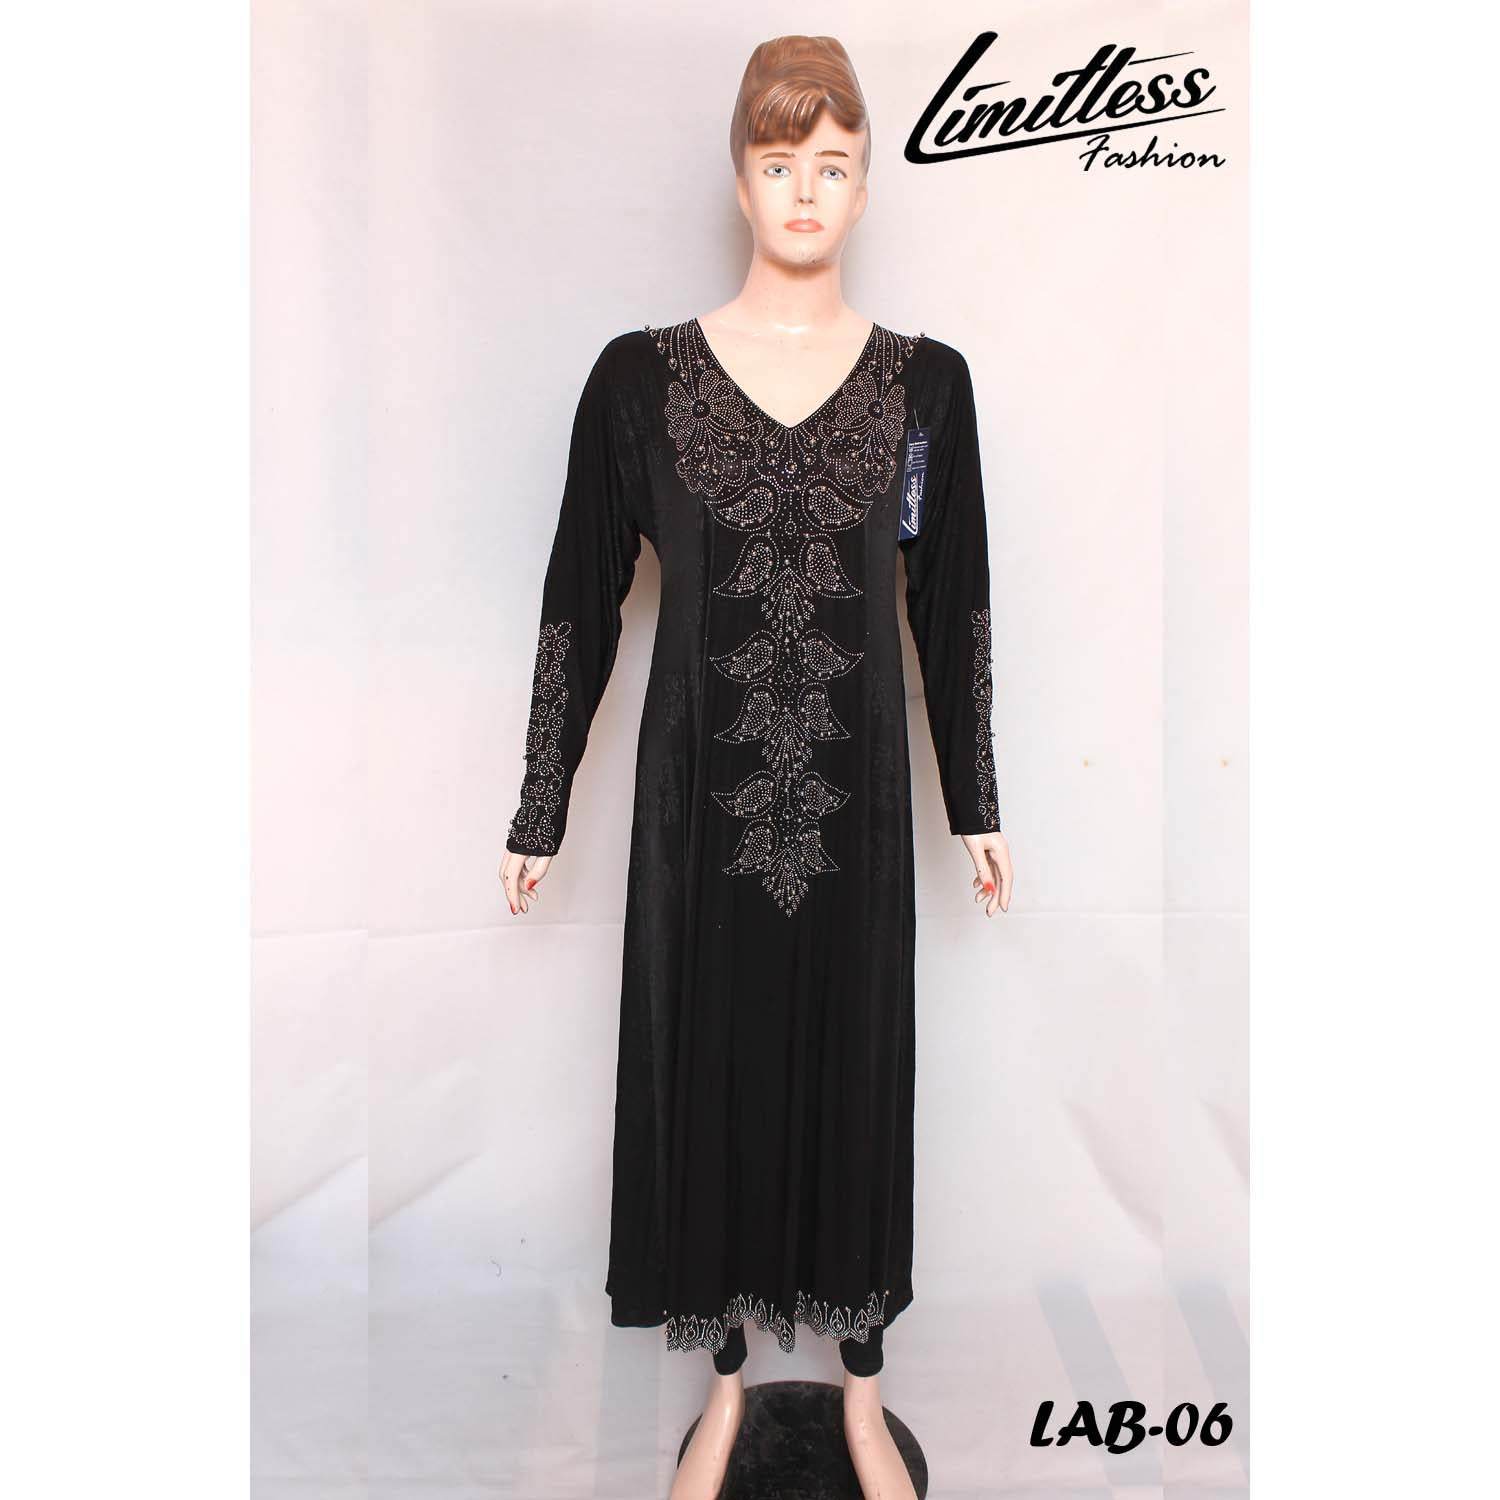 New Stylish & Latest Self Printed Abaya with Stone Work in Jersey for Girls & Women - LAB-06